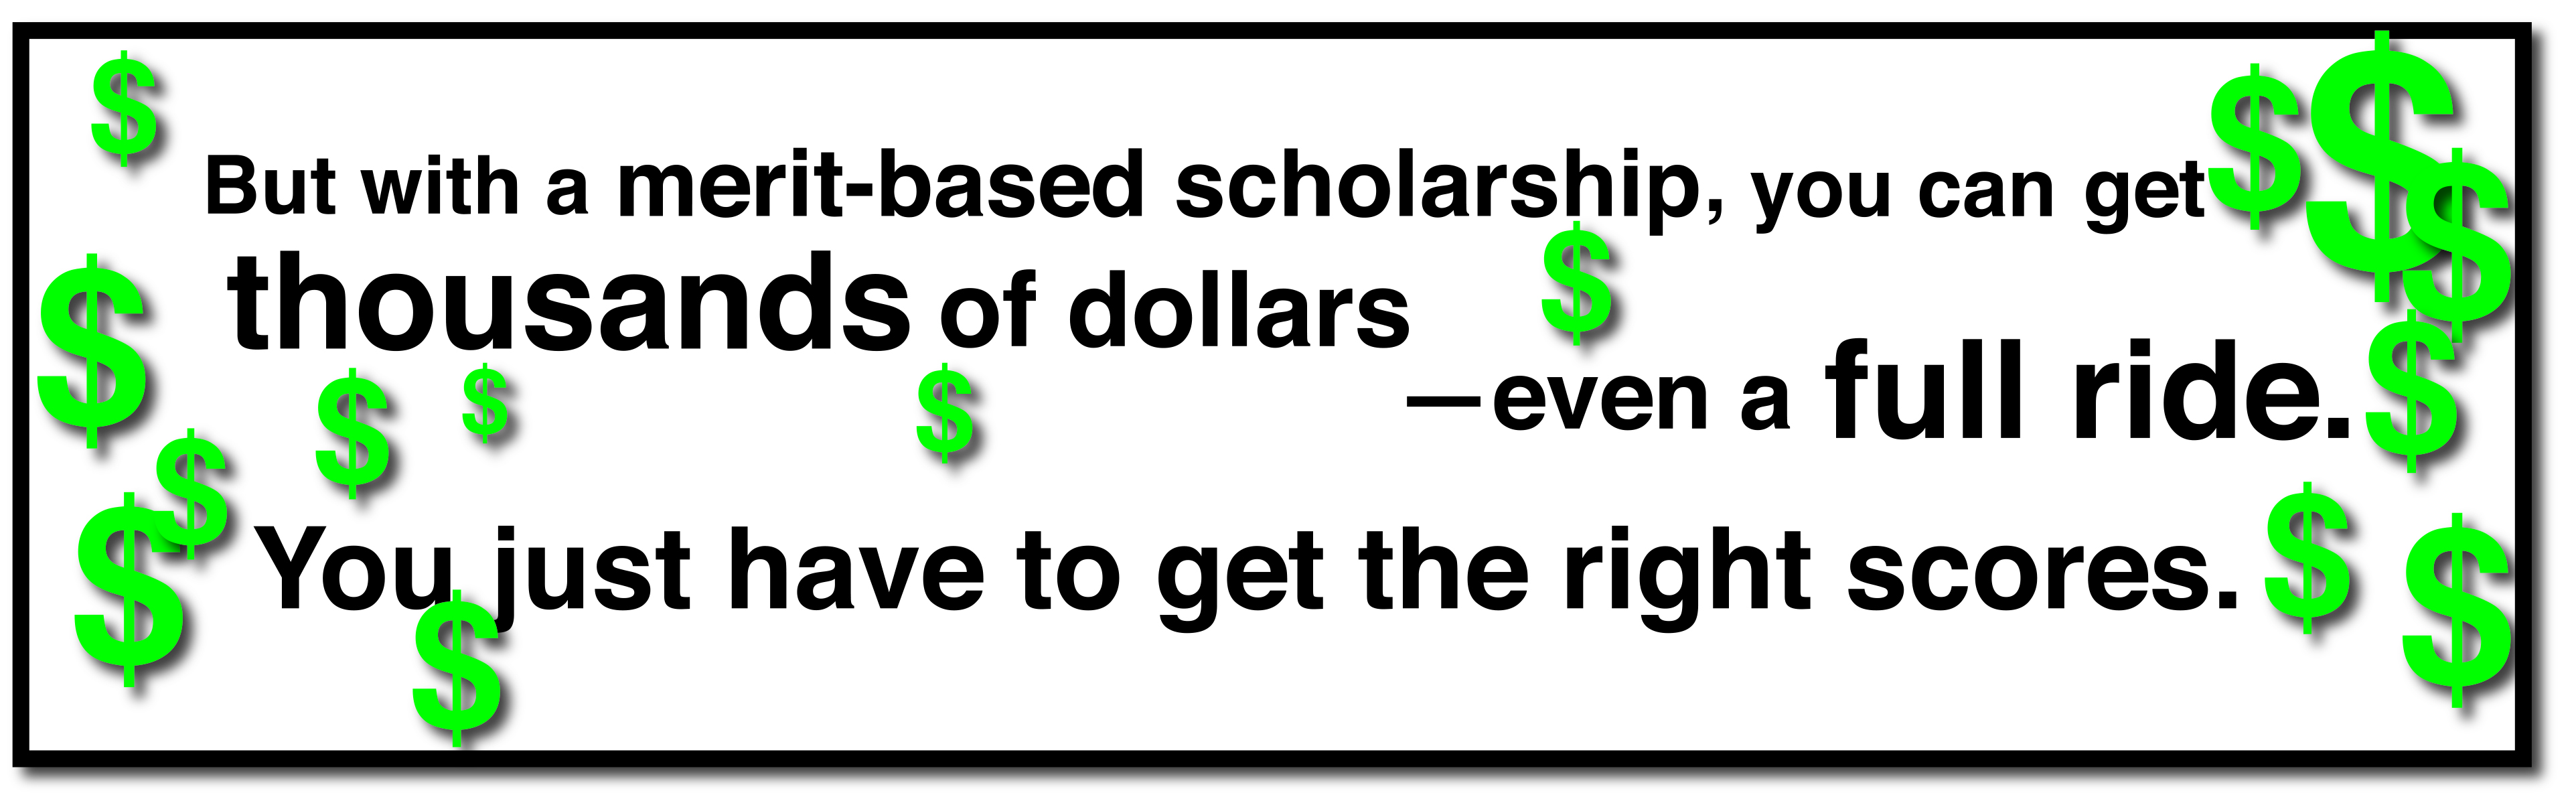 merit scholarships can give you thousands of dollars